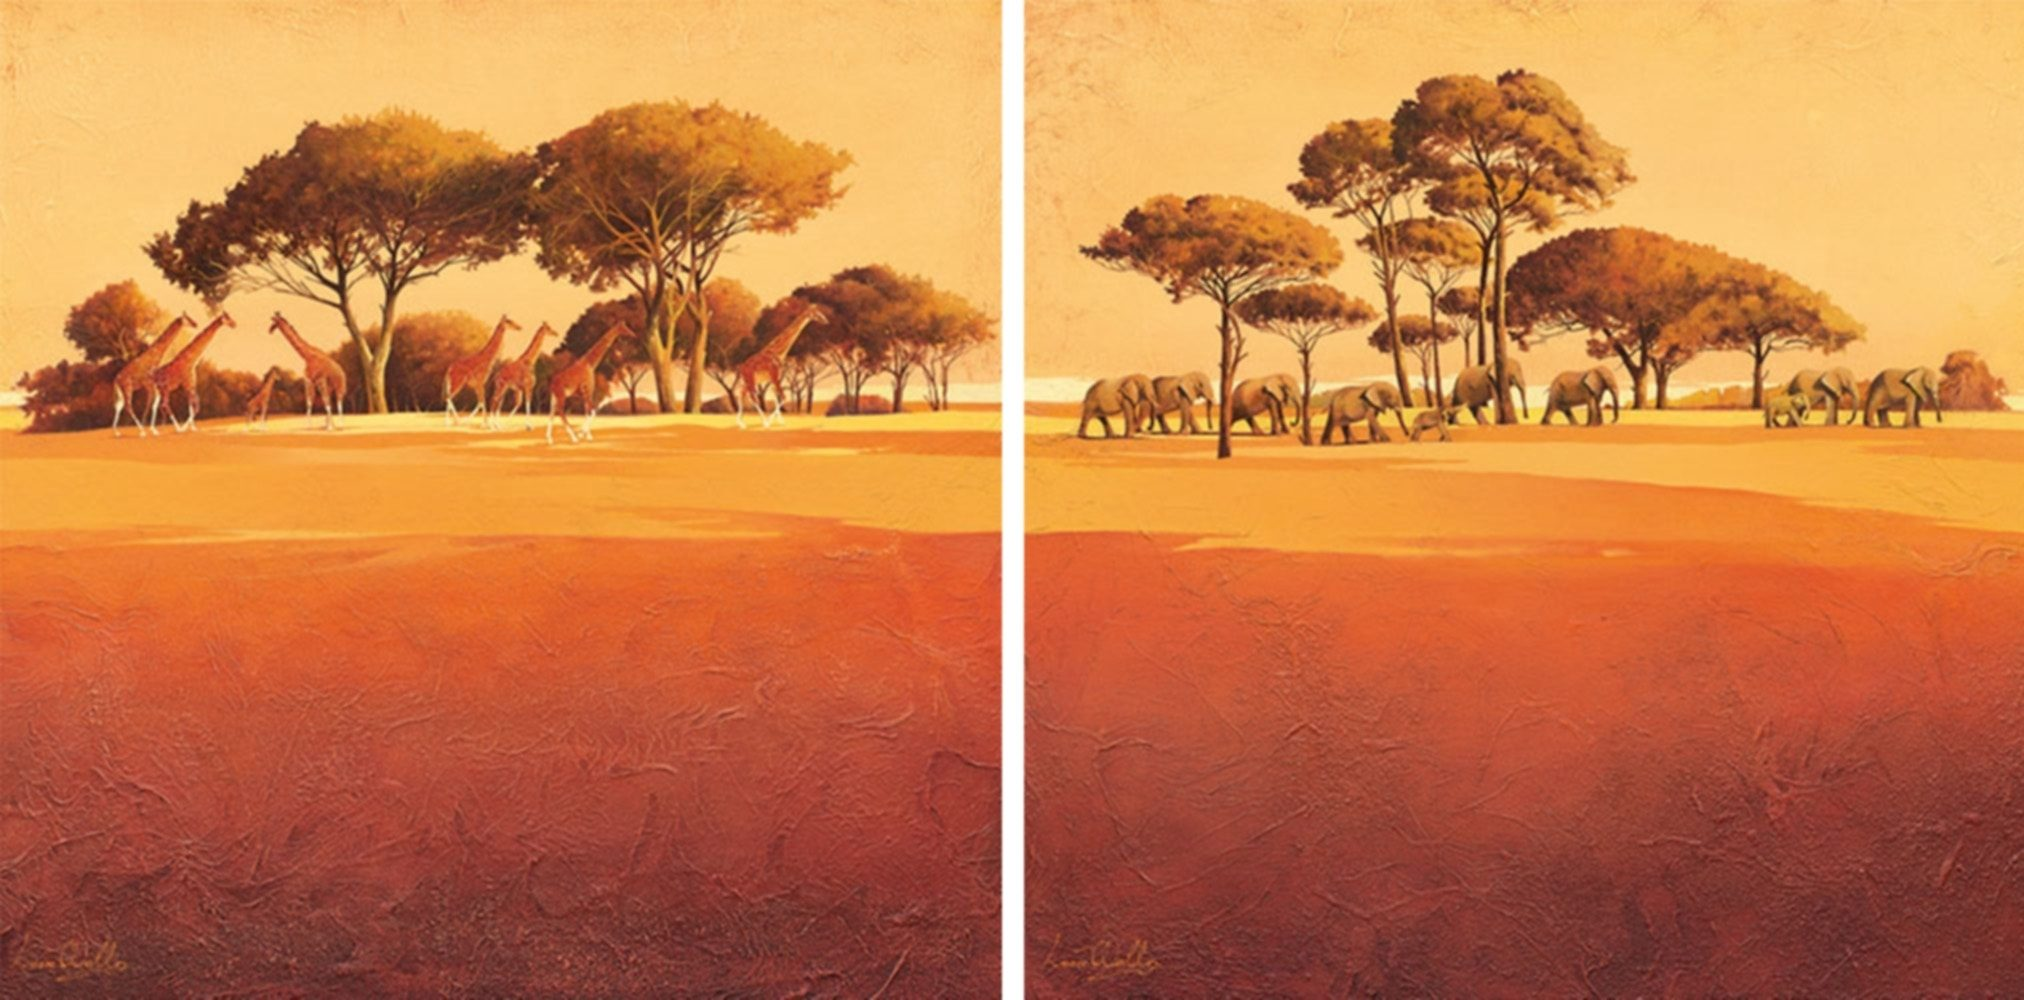 Home Affaire Bild Kunstdruck »Serengeti I/II«, (2-tlg.)